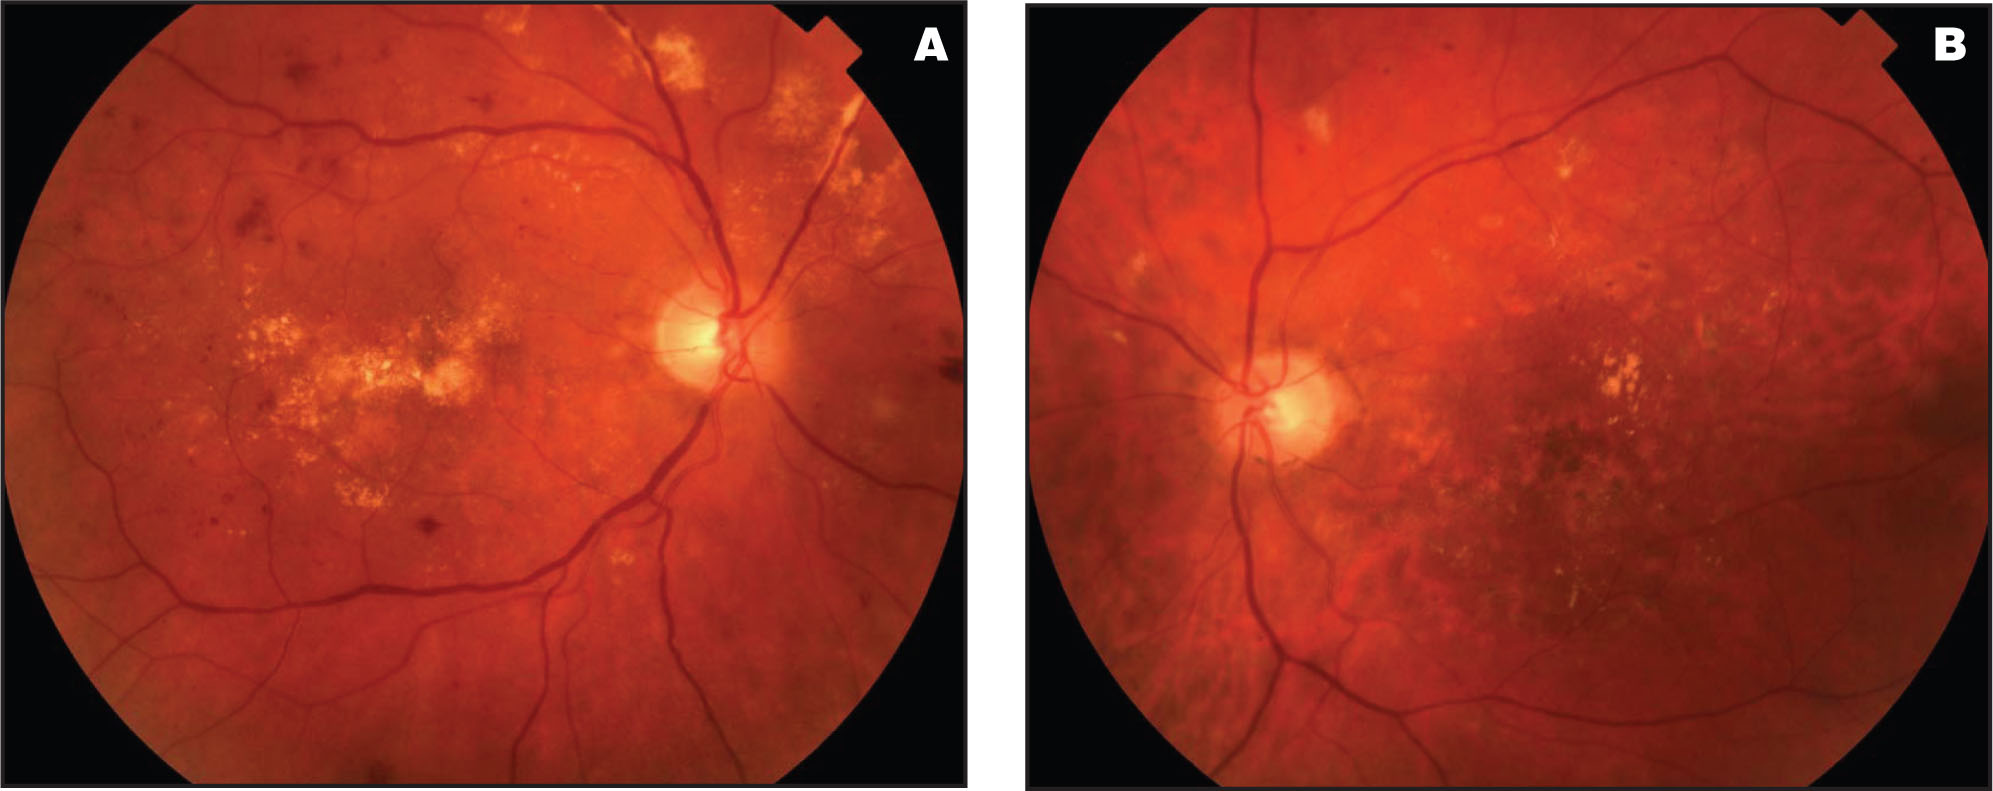 (A) Fundus Photograph of the Right Eye in Case #1 at 7 Months Post Injection, Showing Improvement in Macular Edema with Some Improvement in Vascular Sheathing as Well, Particularly Inferiorly. (B) Fundus Photograph of the Left Eye, Showing Improvement in Macular Edema and Prior Photocoagulation Spots.